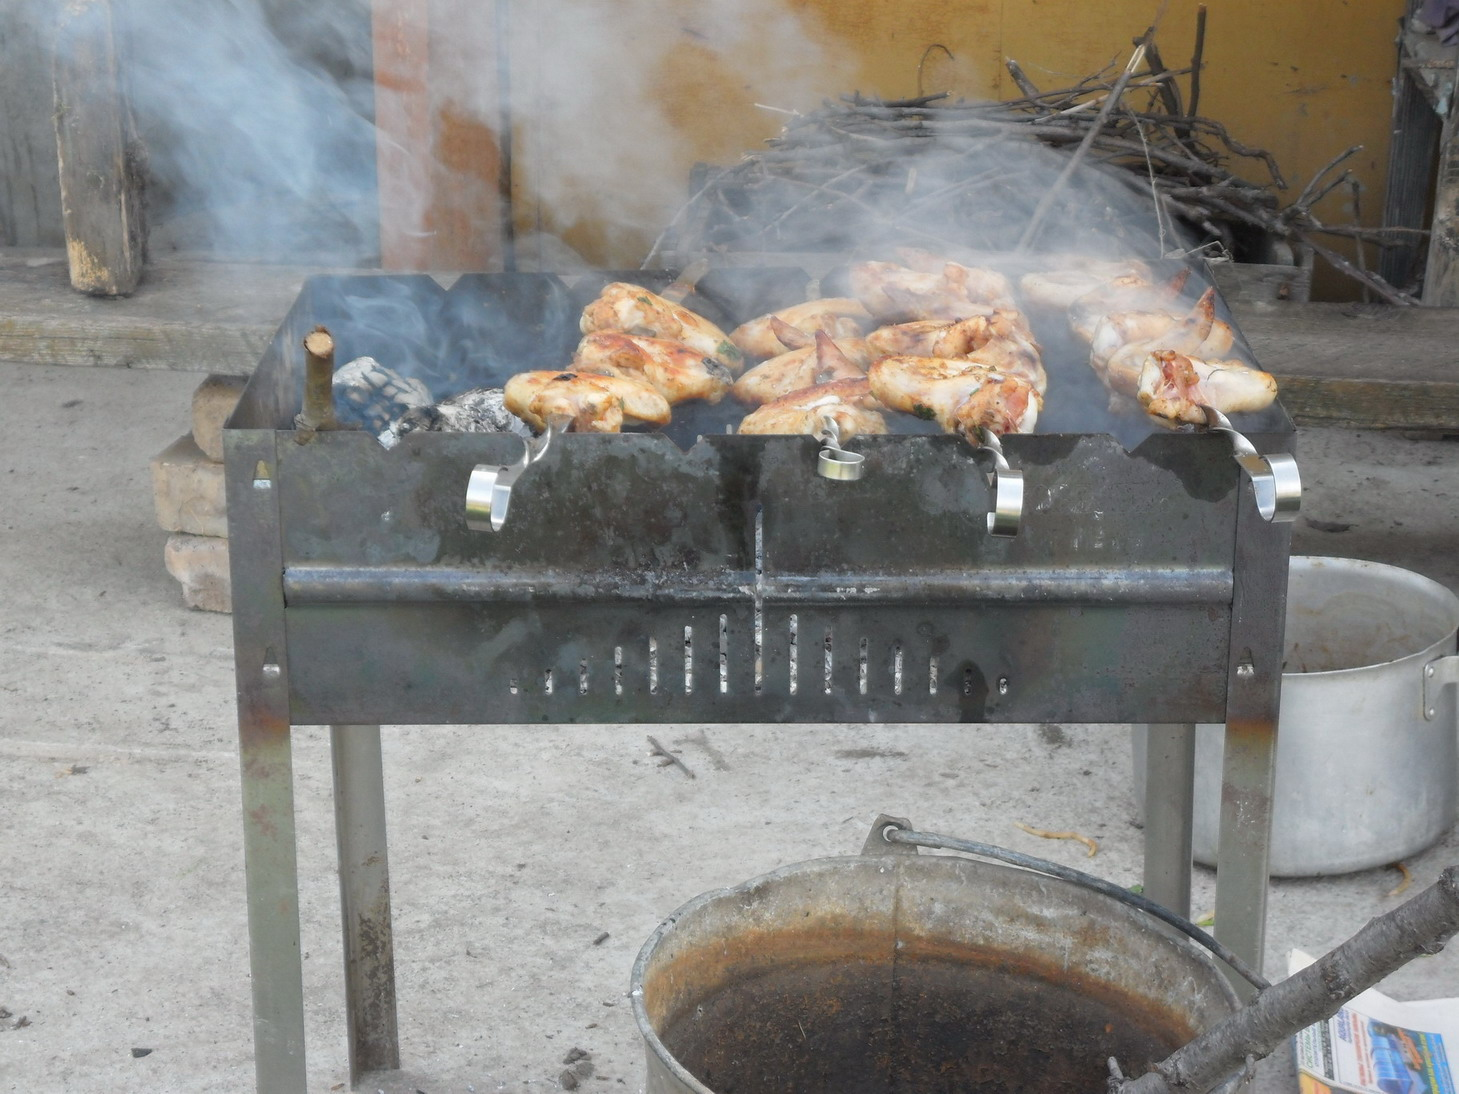 Chicken on wood-fired barbecue